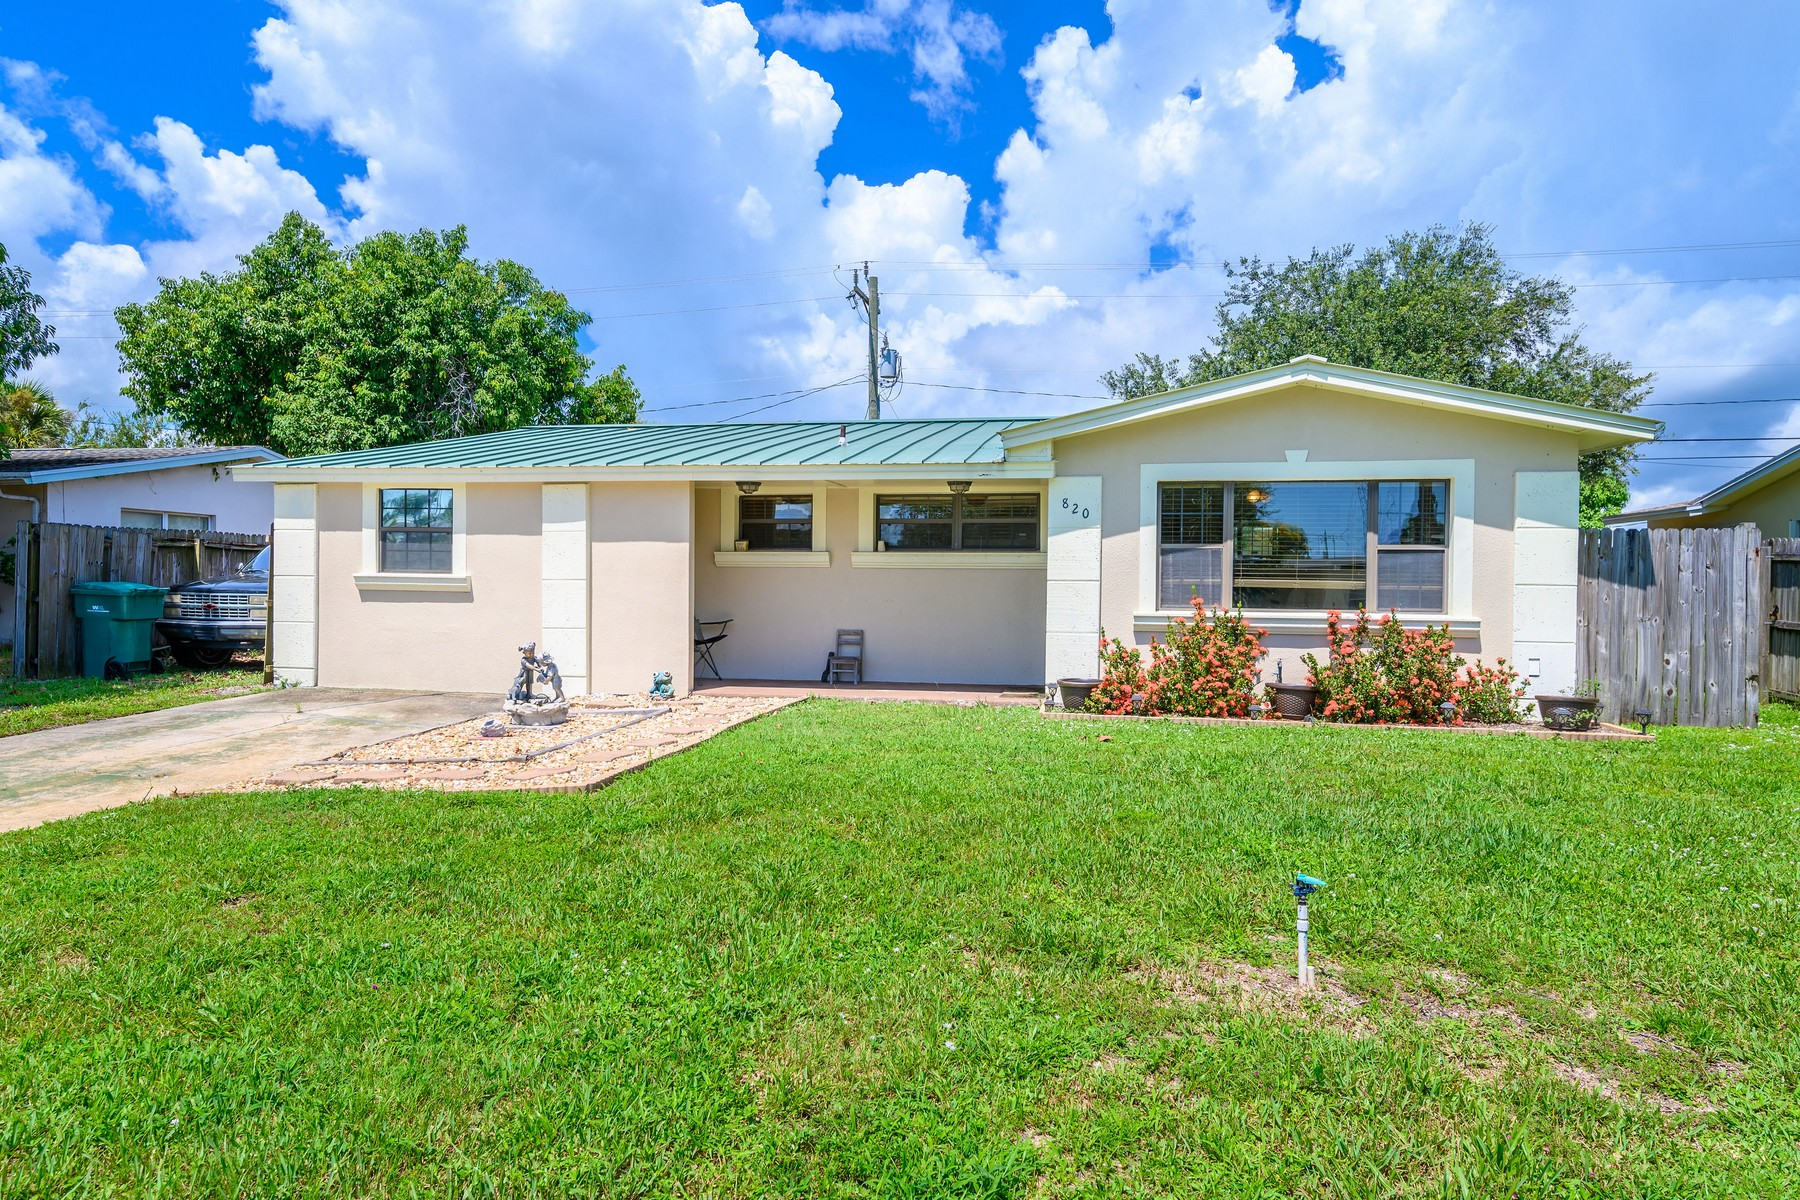 Additional photo for property listing at Remodeled & Inviting Home 820 Tupelo Drive Melbourne, Florida 32935 United States